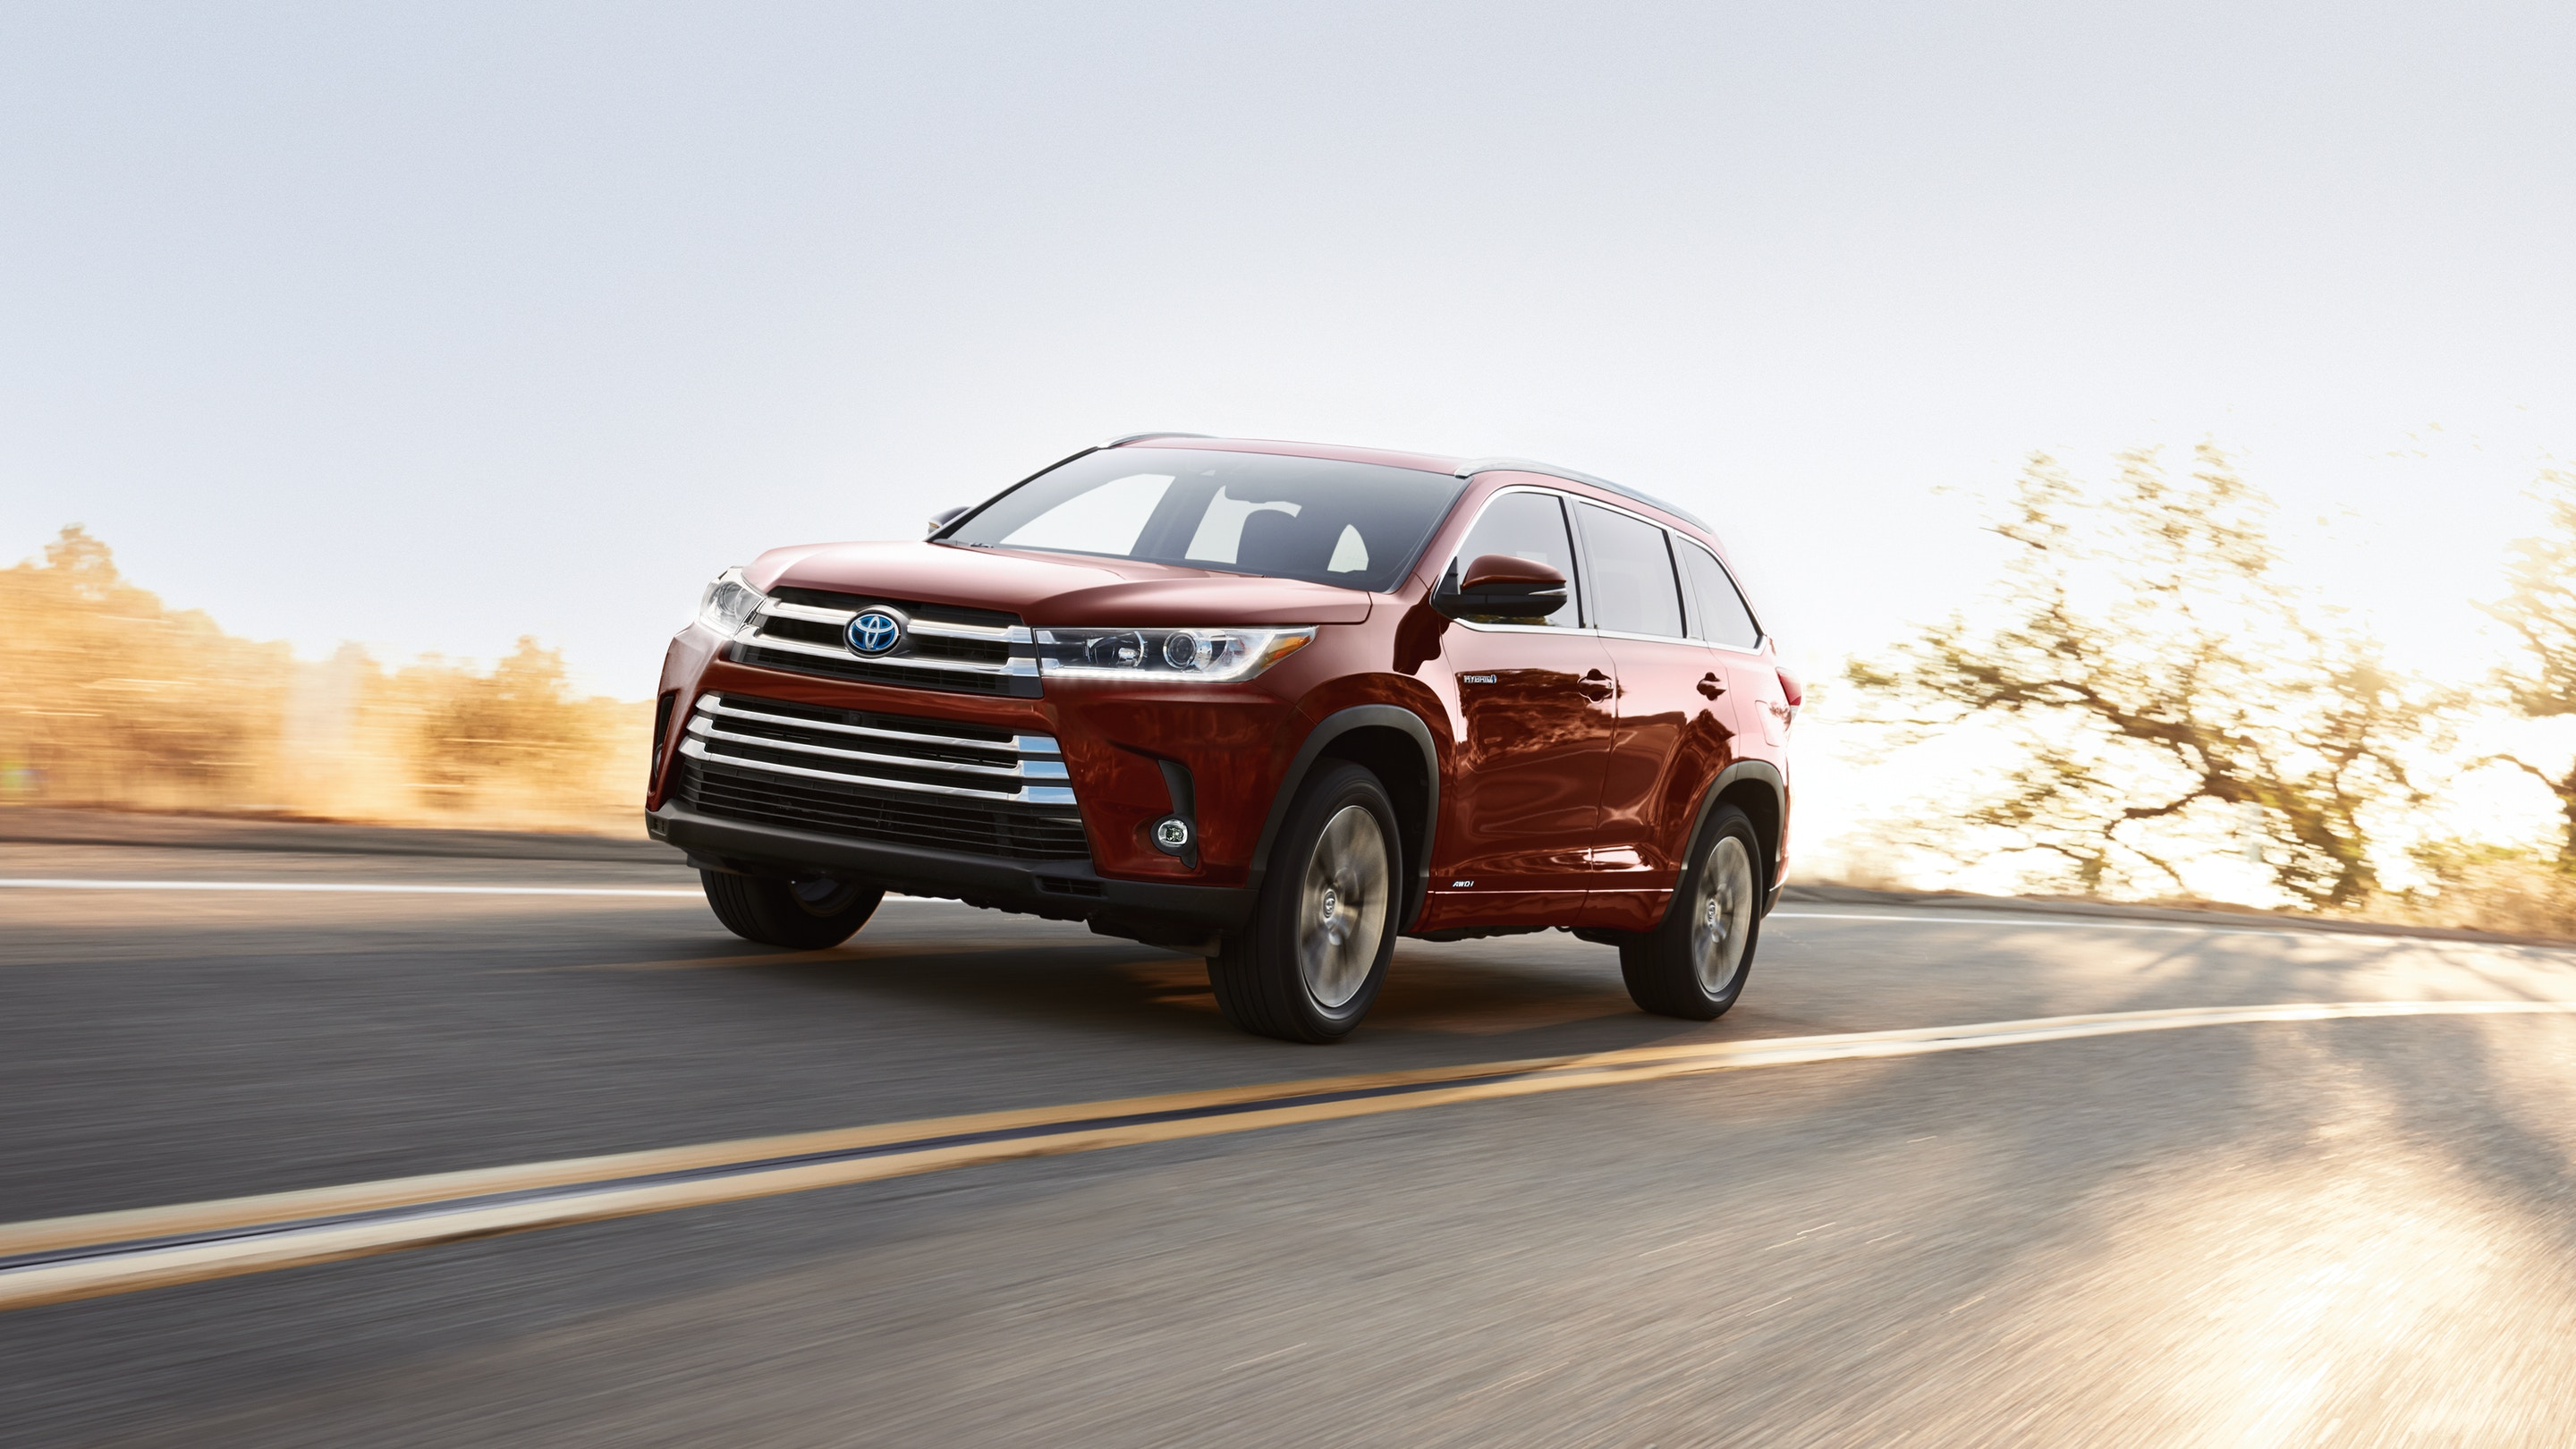 2019 Toyota Highlander for Sale near Westmont, IL